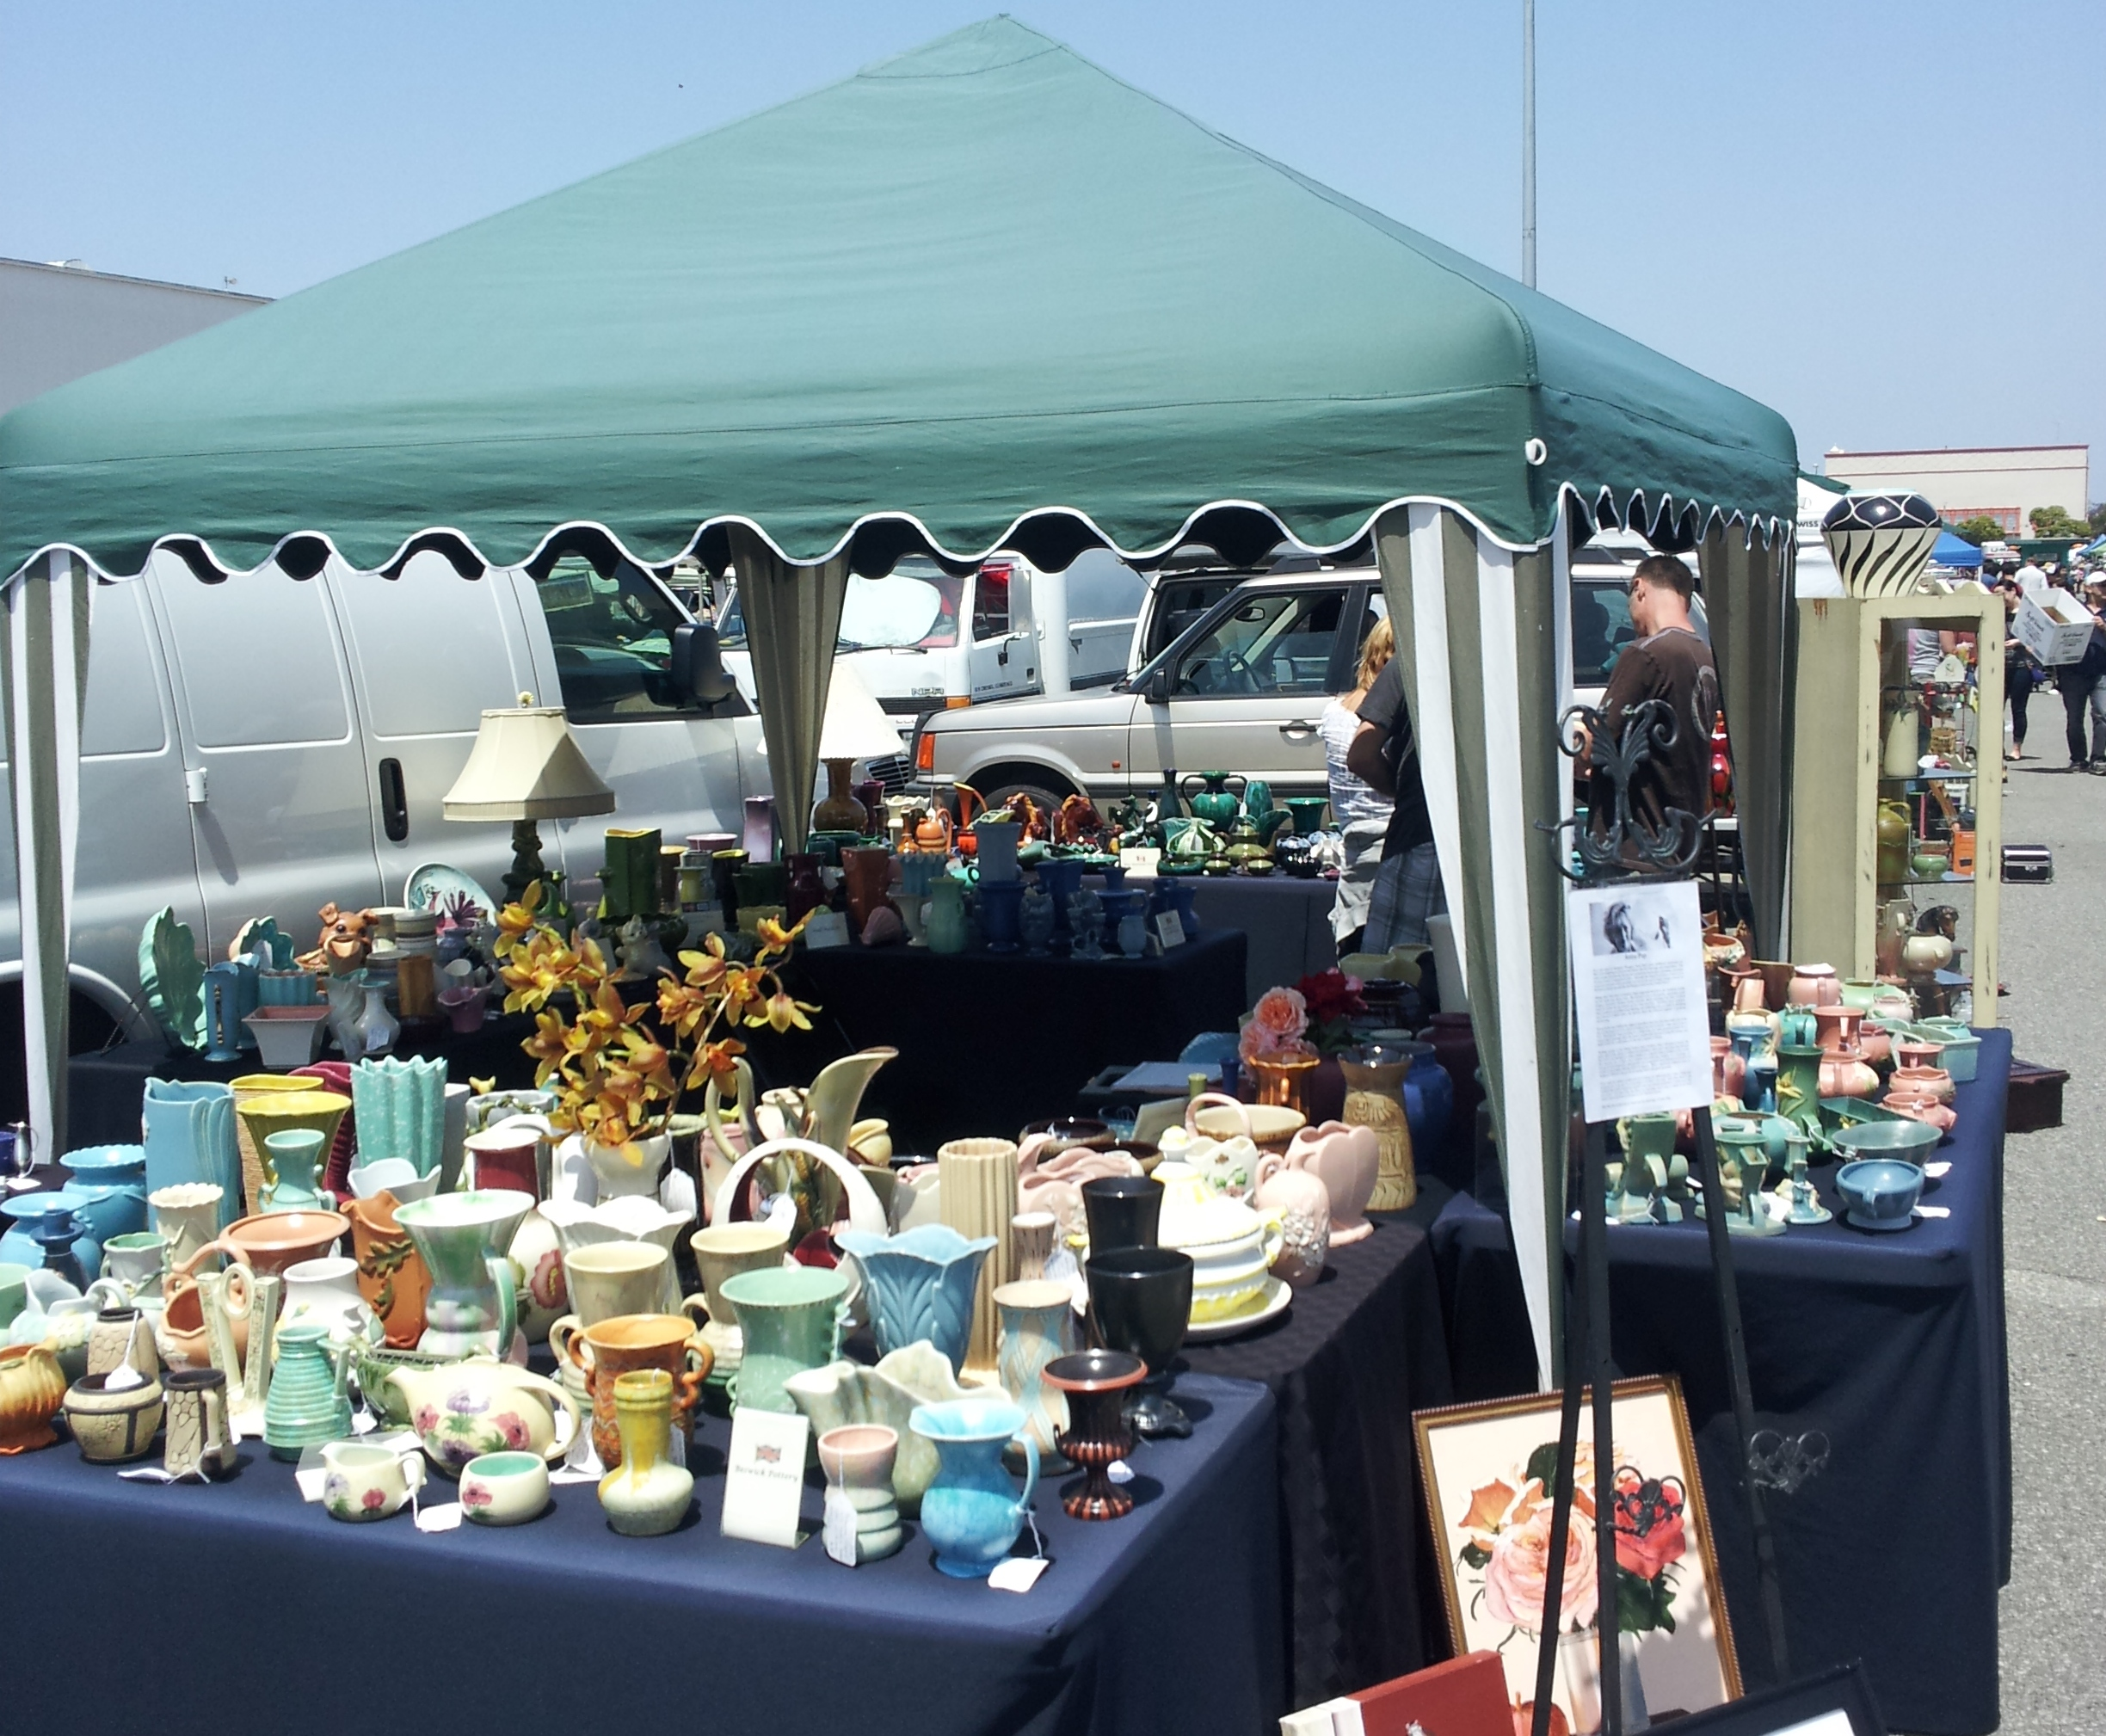 Billy ... & Ceramic Collectibles u0026 Antiques Available Today May 27th at ...